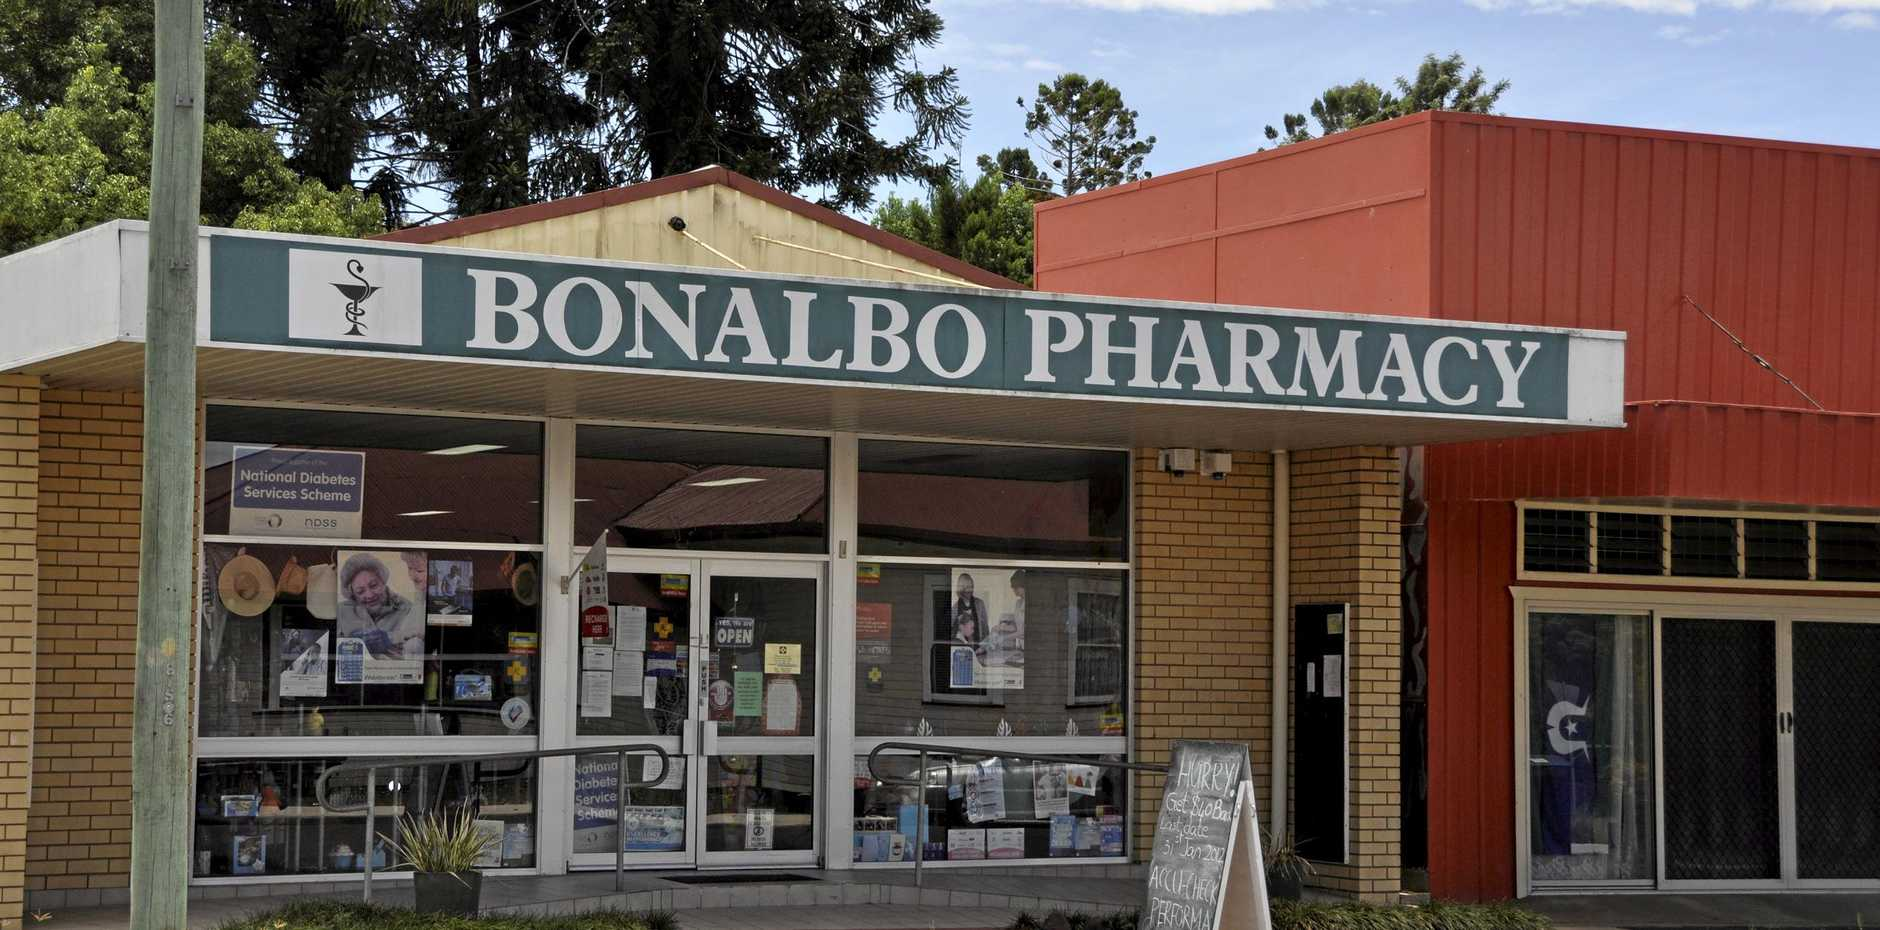 A man has been accused of robbing Bonalbo Pharmacy while armed with a syringe.